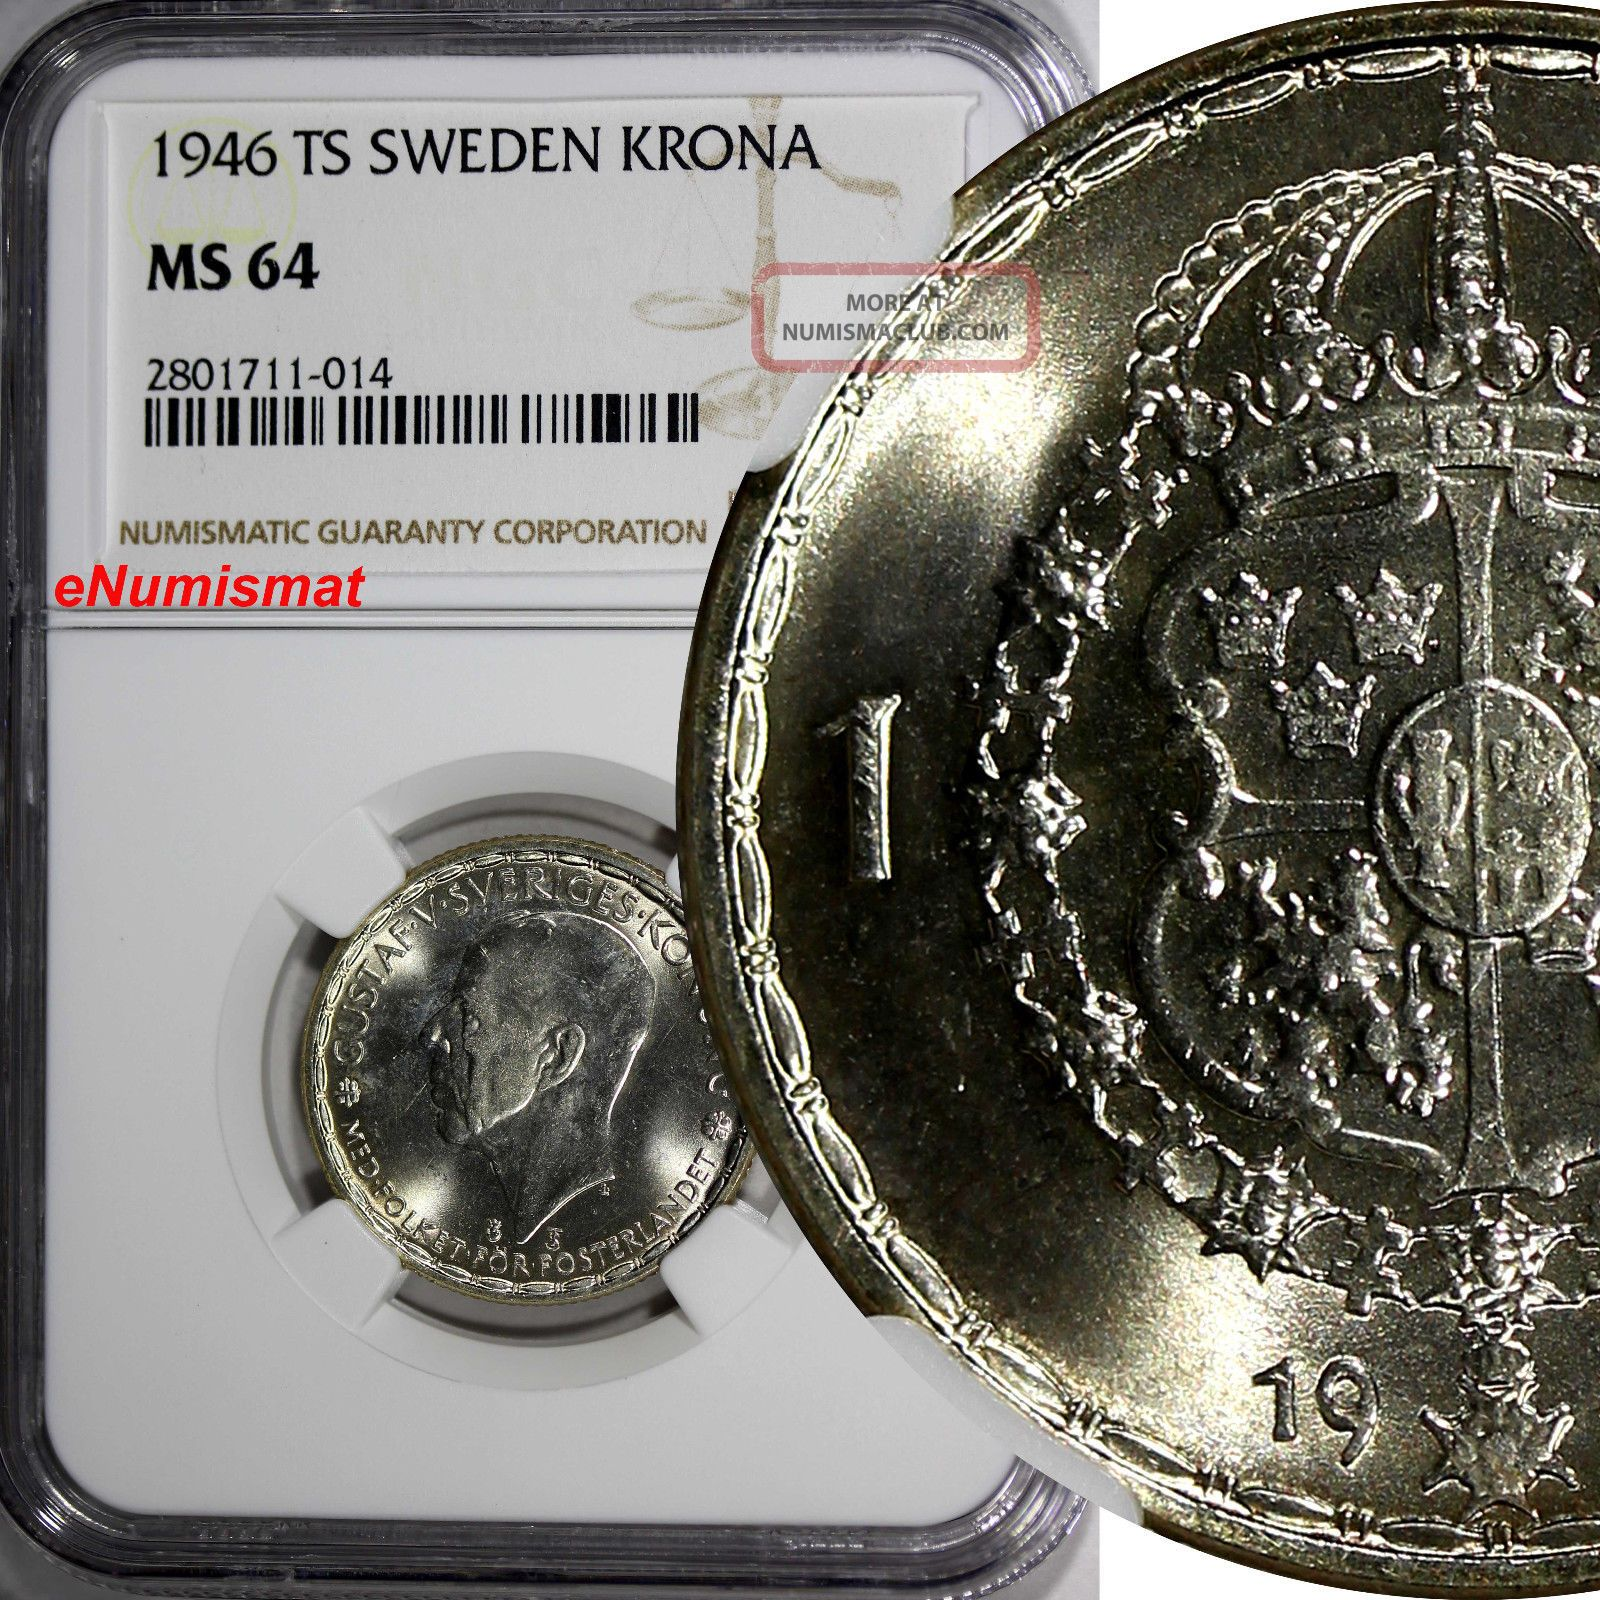 Sweden Gustaf V Silver 1946 Ts 1 Krona Ngc Ms64 Top Graded Gem Coin Km 814 Europe photo